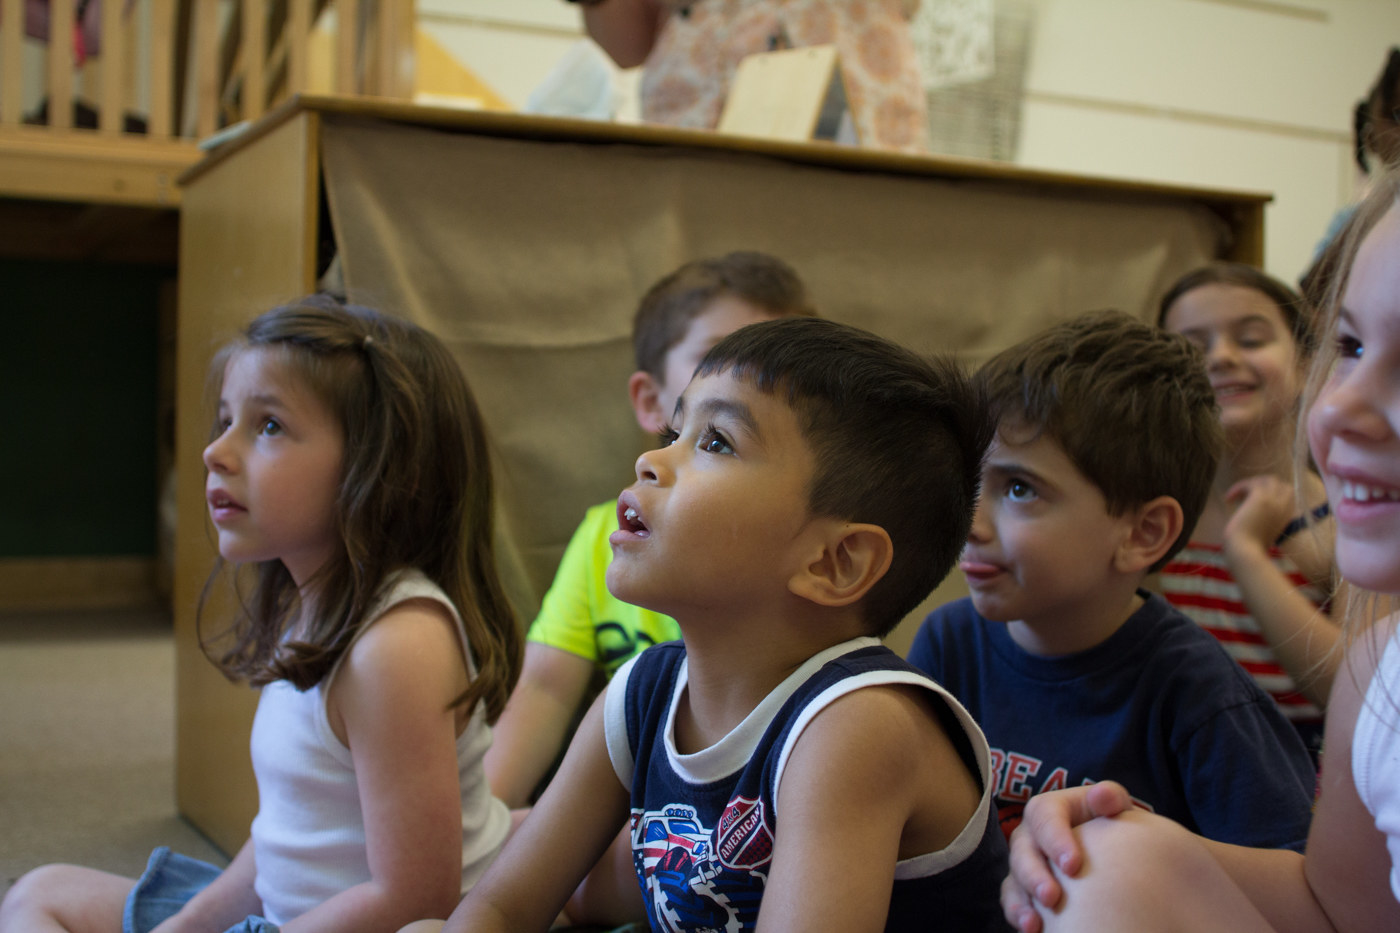 A group of children sitting on the floor and watching something.